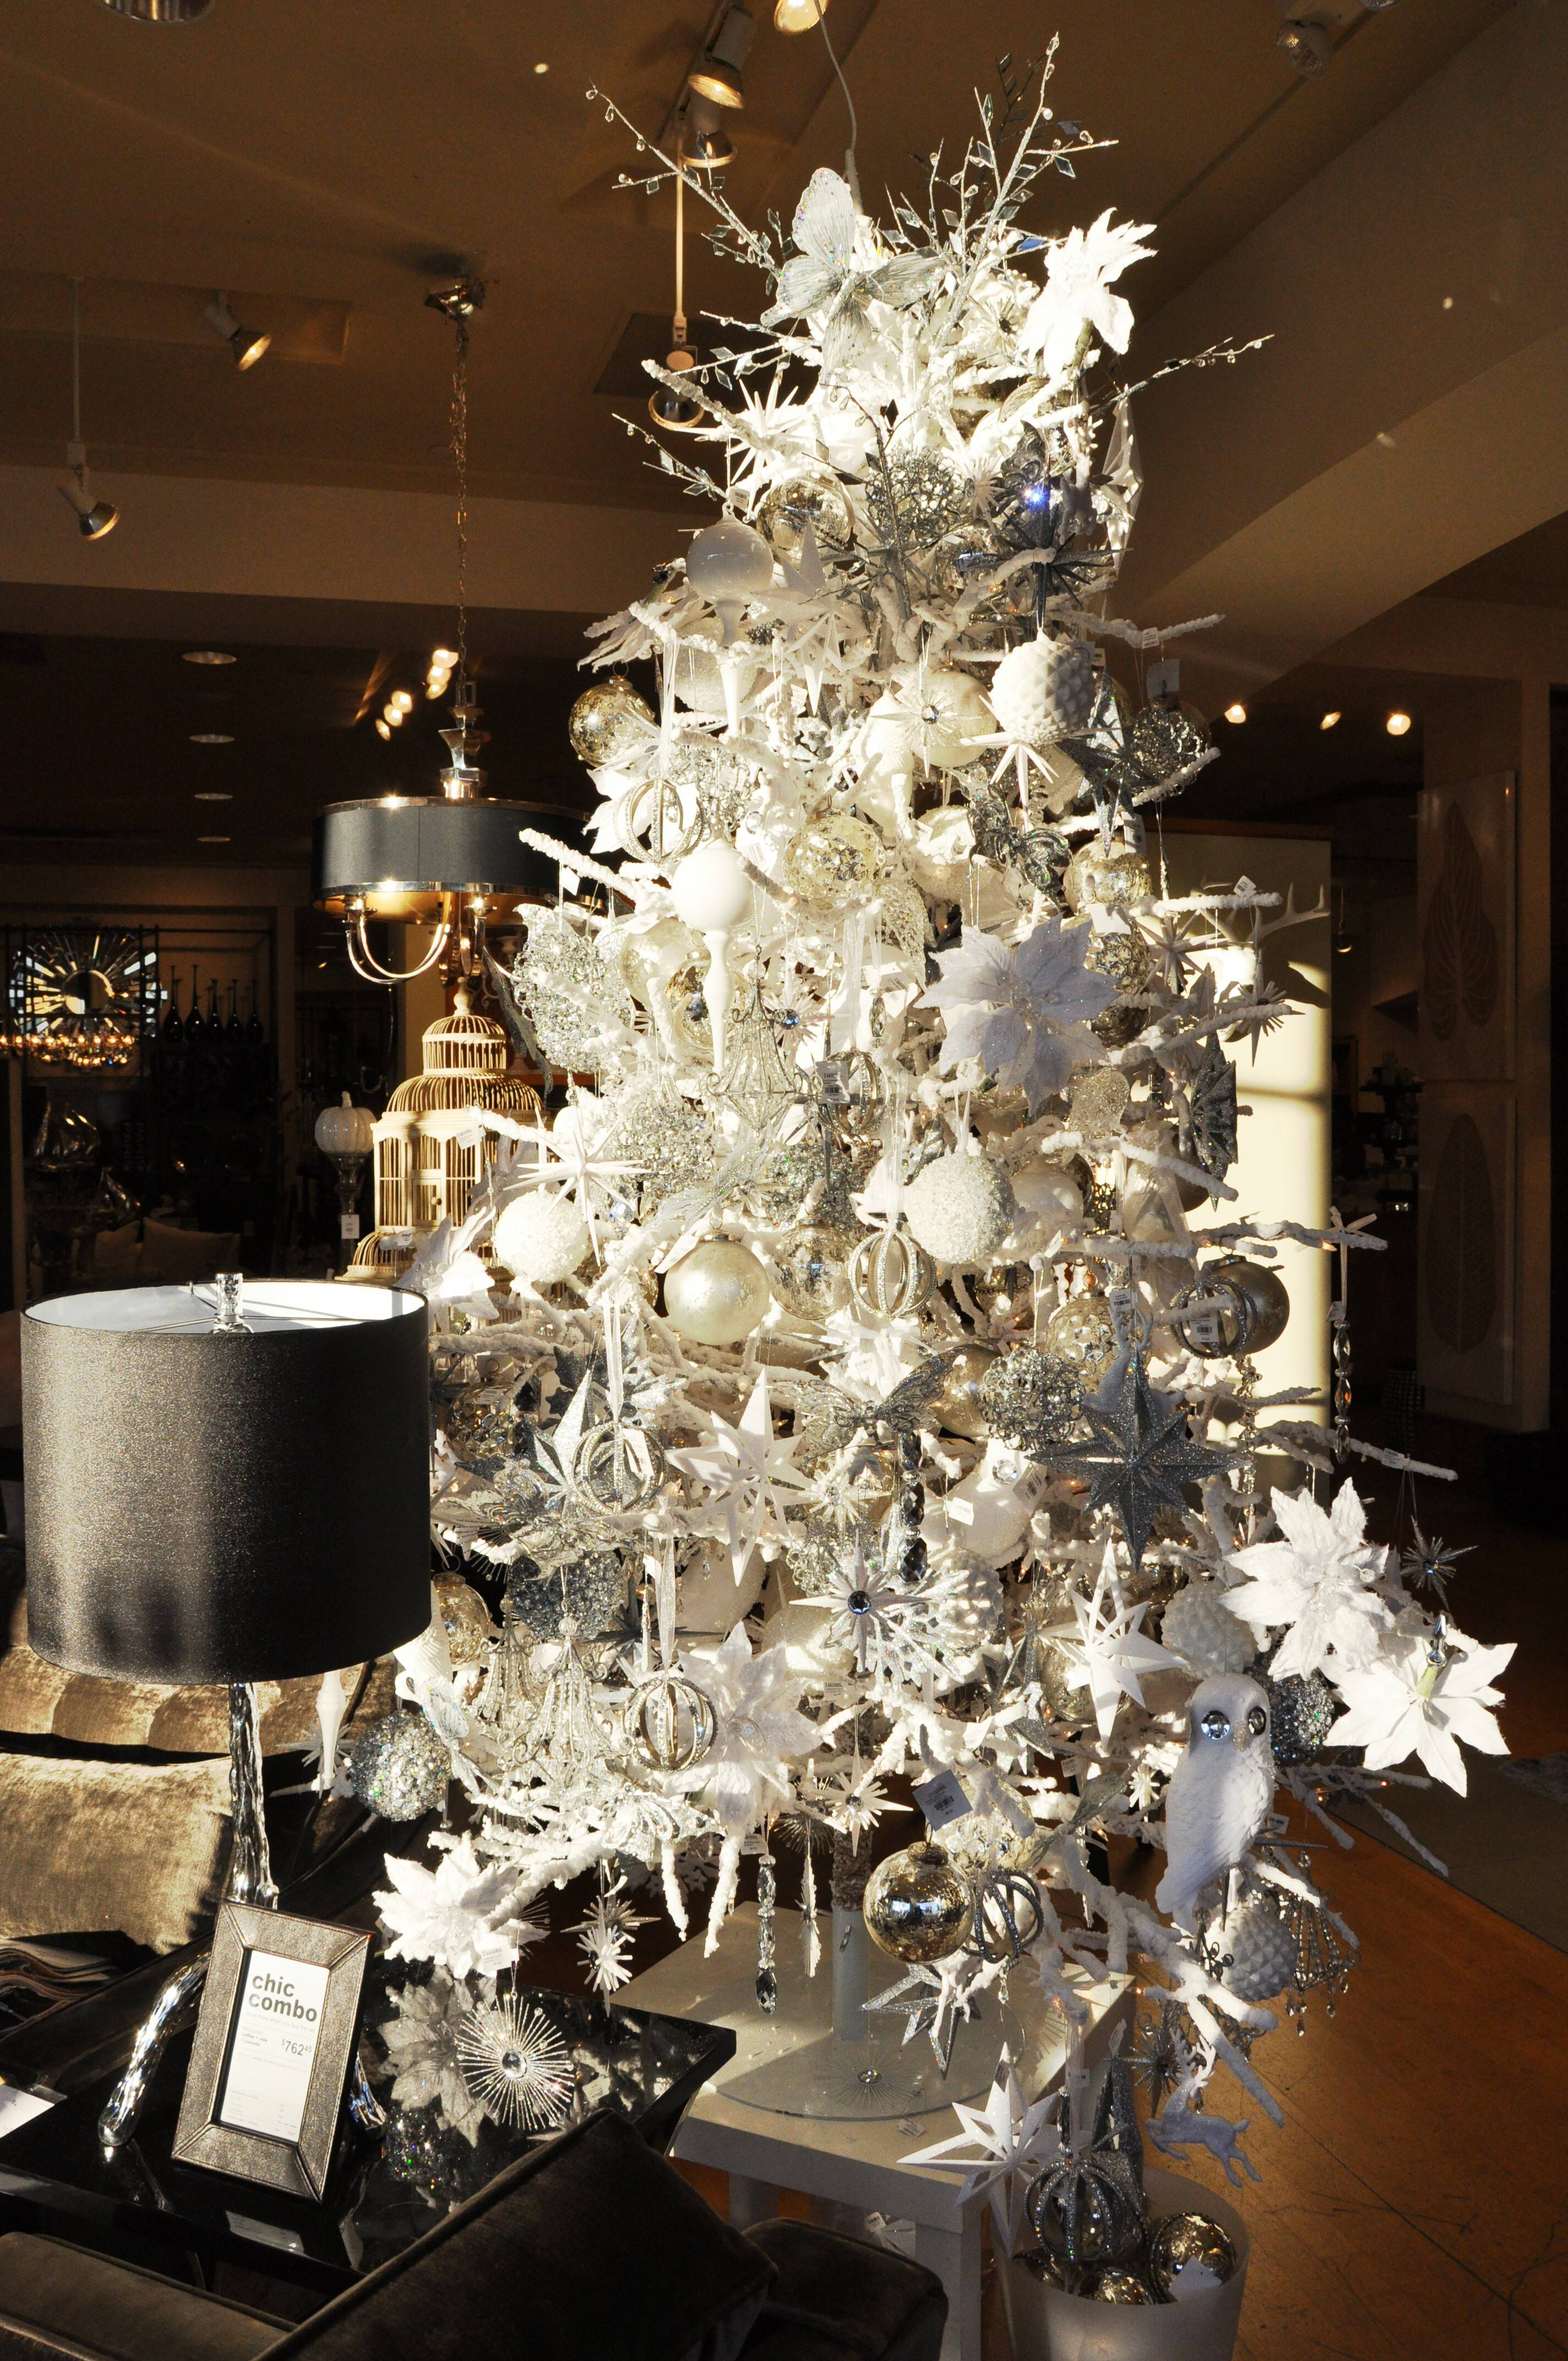 Christmas tree 2014 decorating trends - Christmas Tree Kuwans Com 2